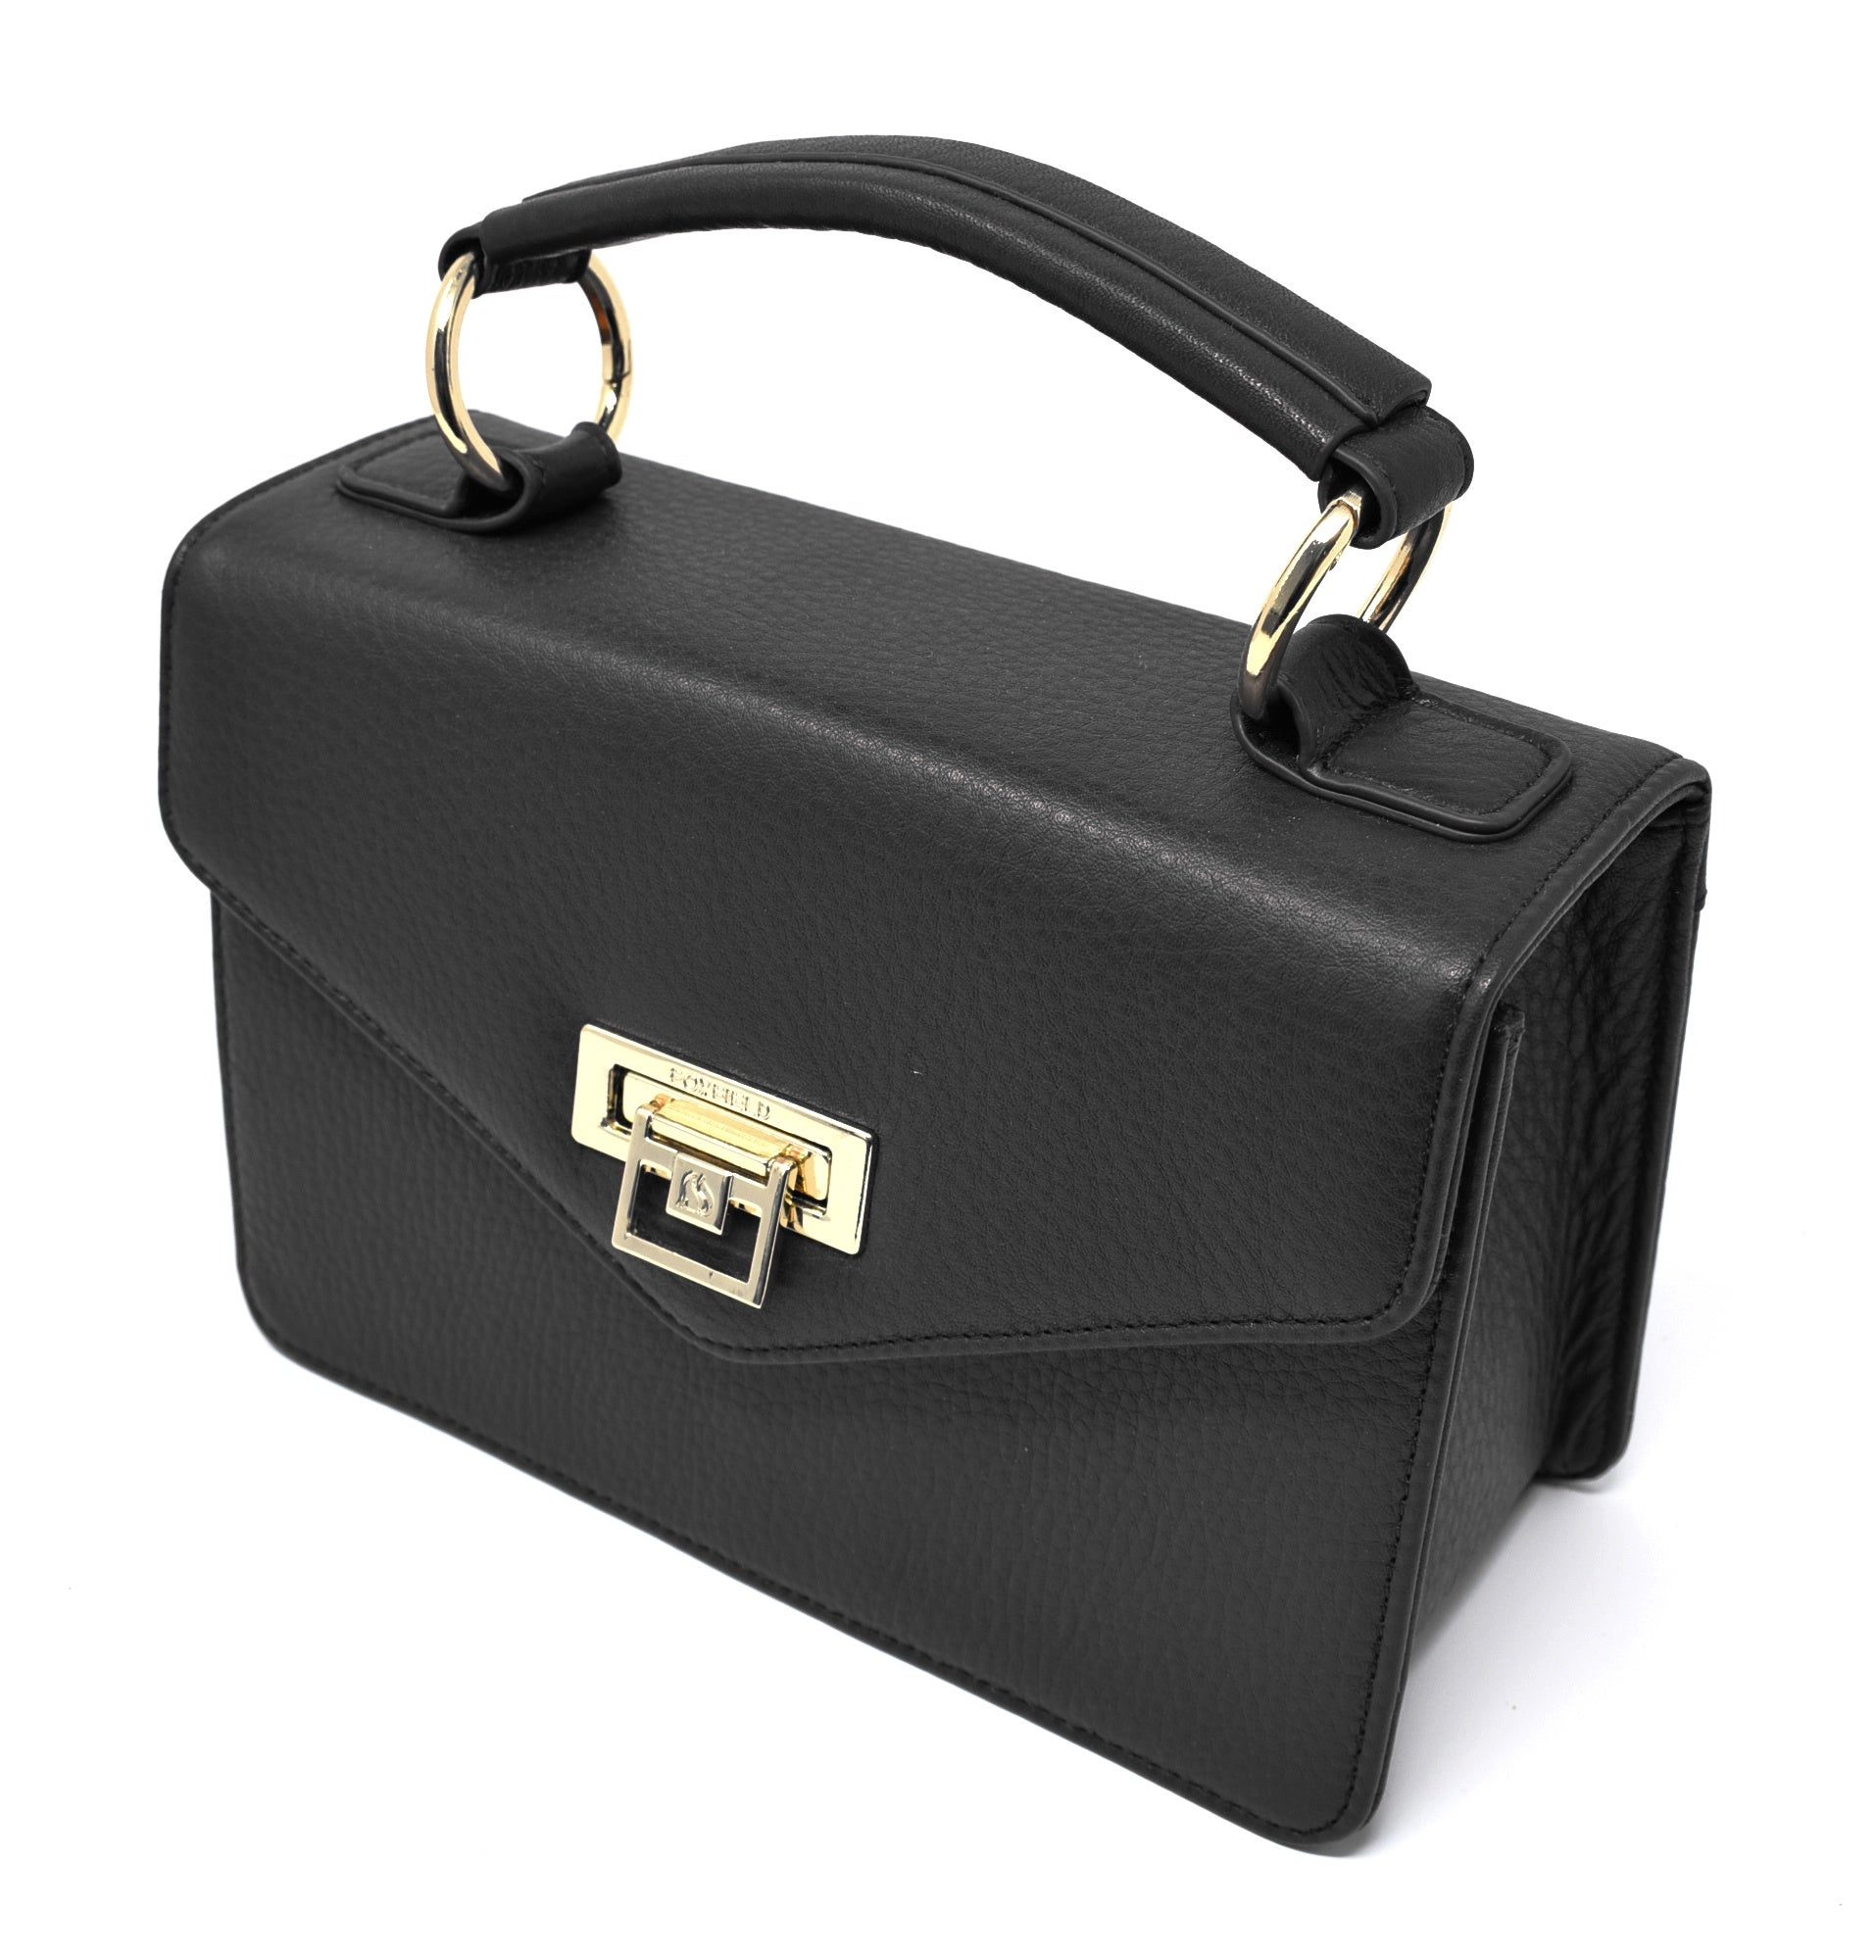 Foxfield - Dent Black Leather Handbag